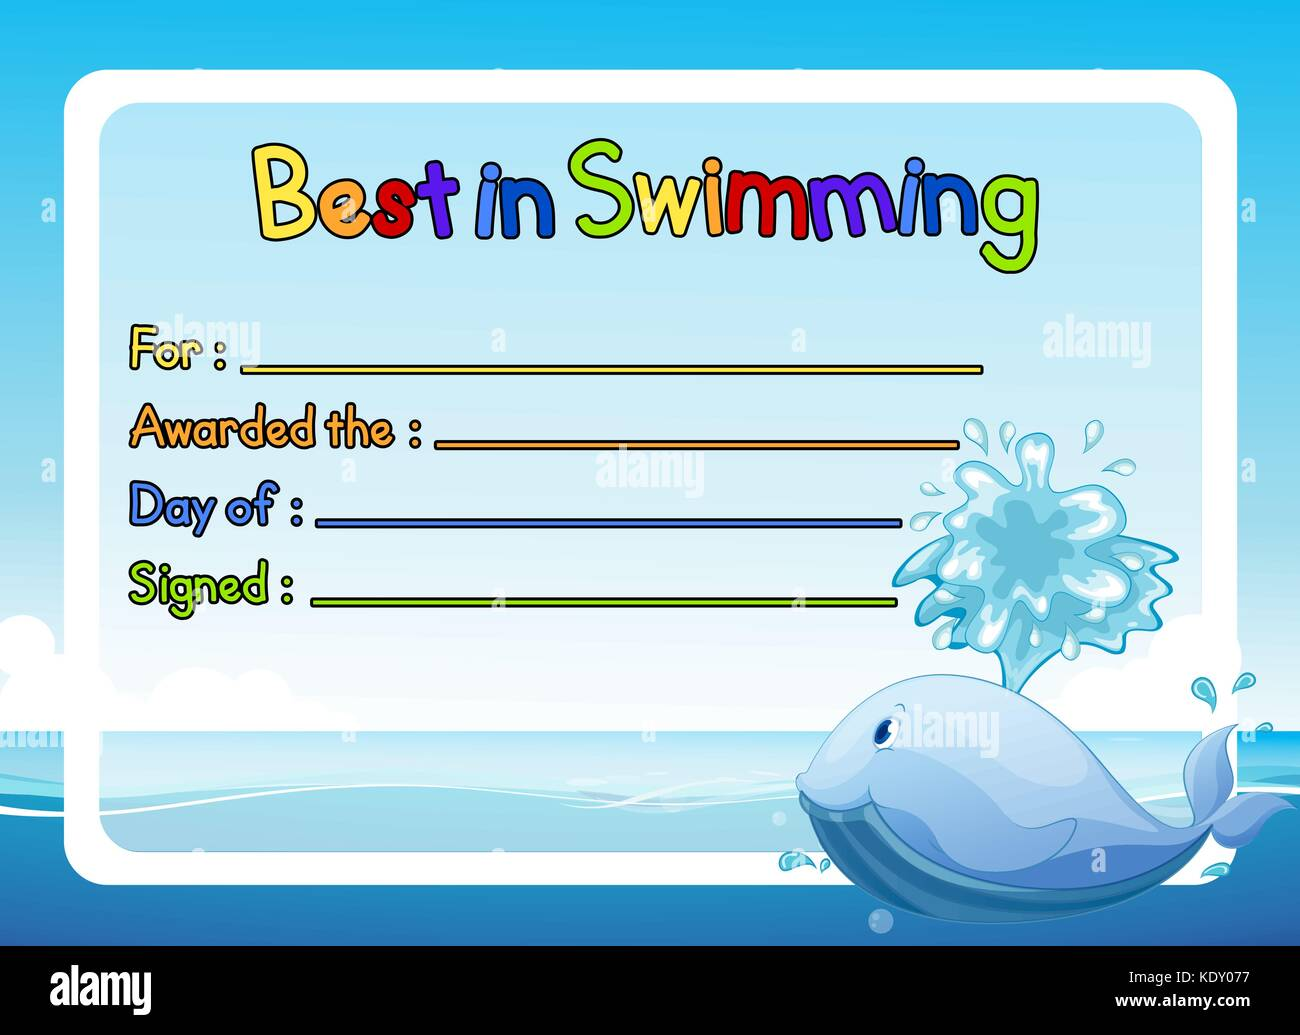 Best In Swimming Award Template With Whale In Ocean Illustration